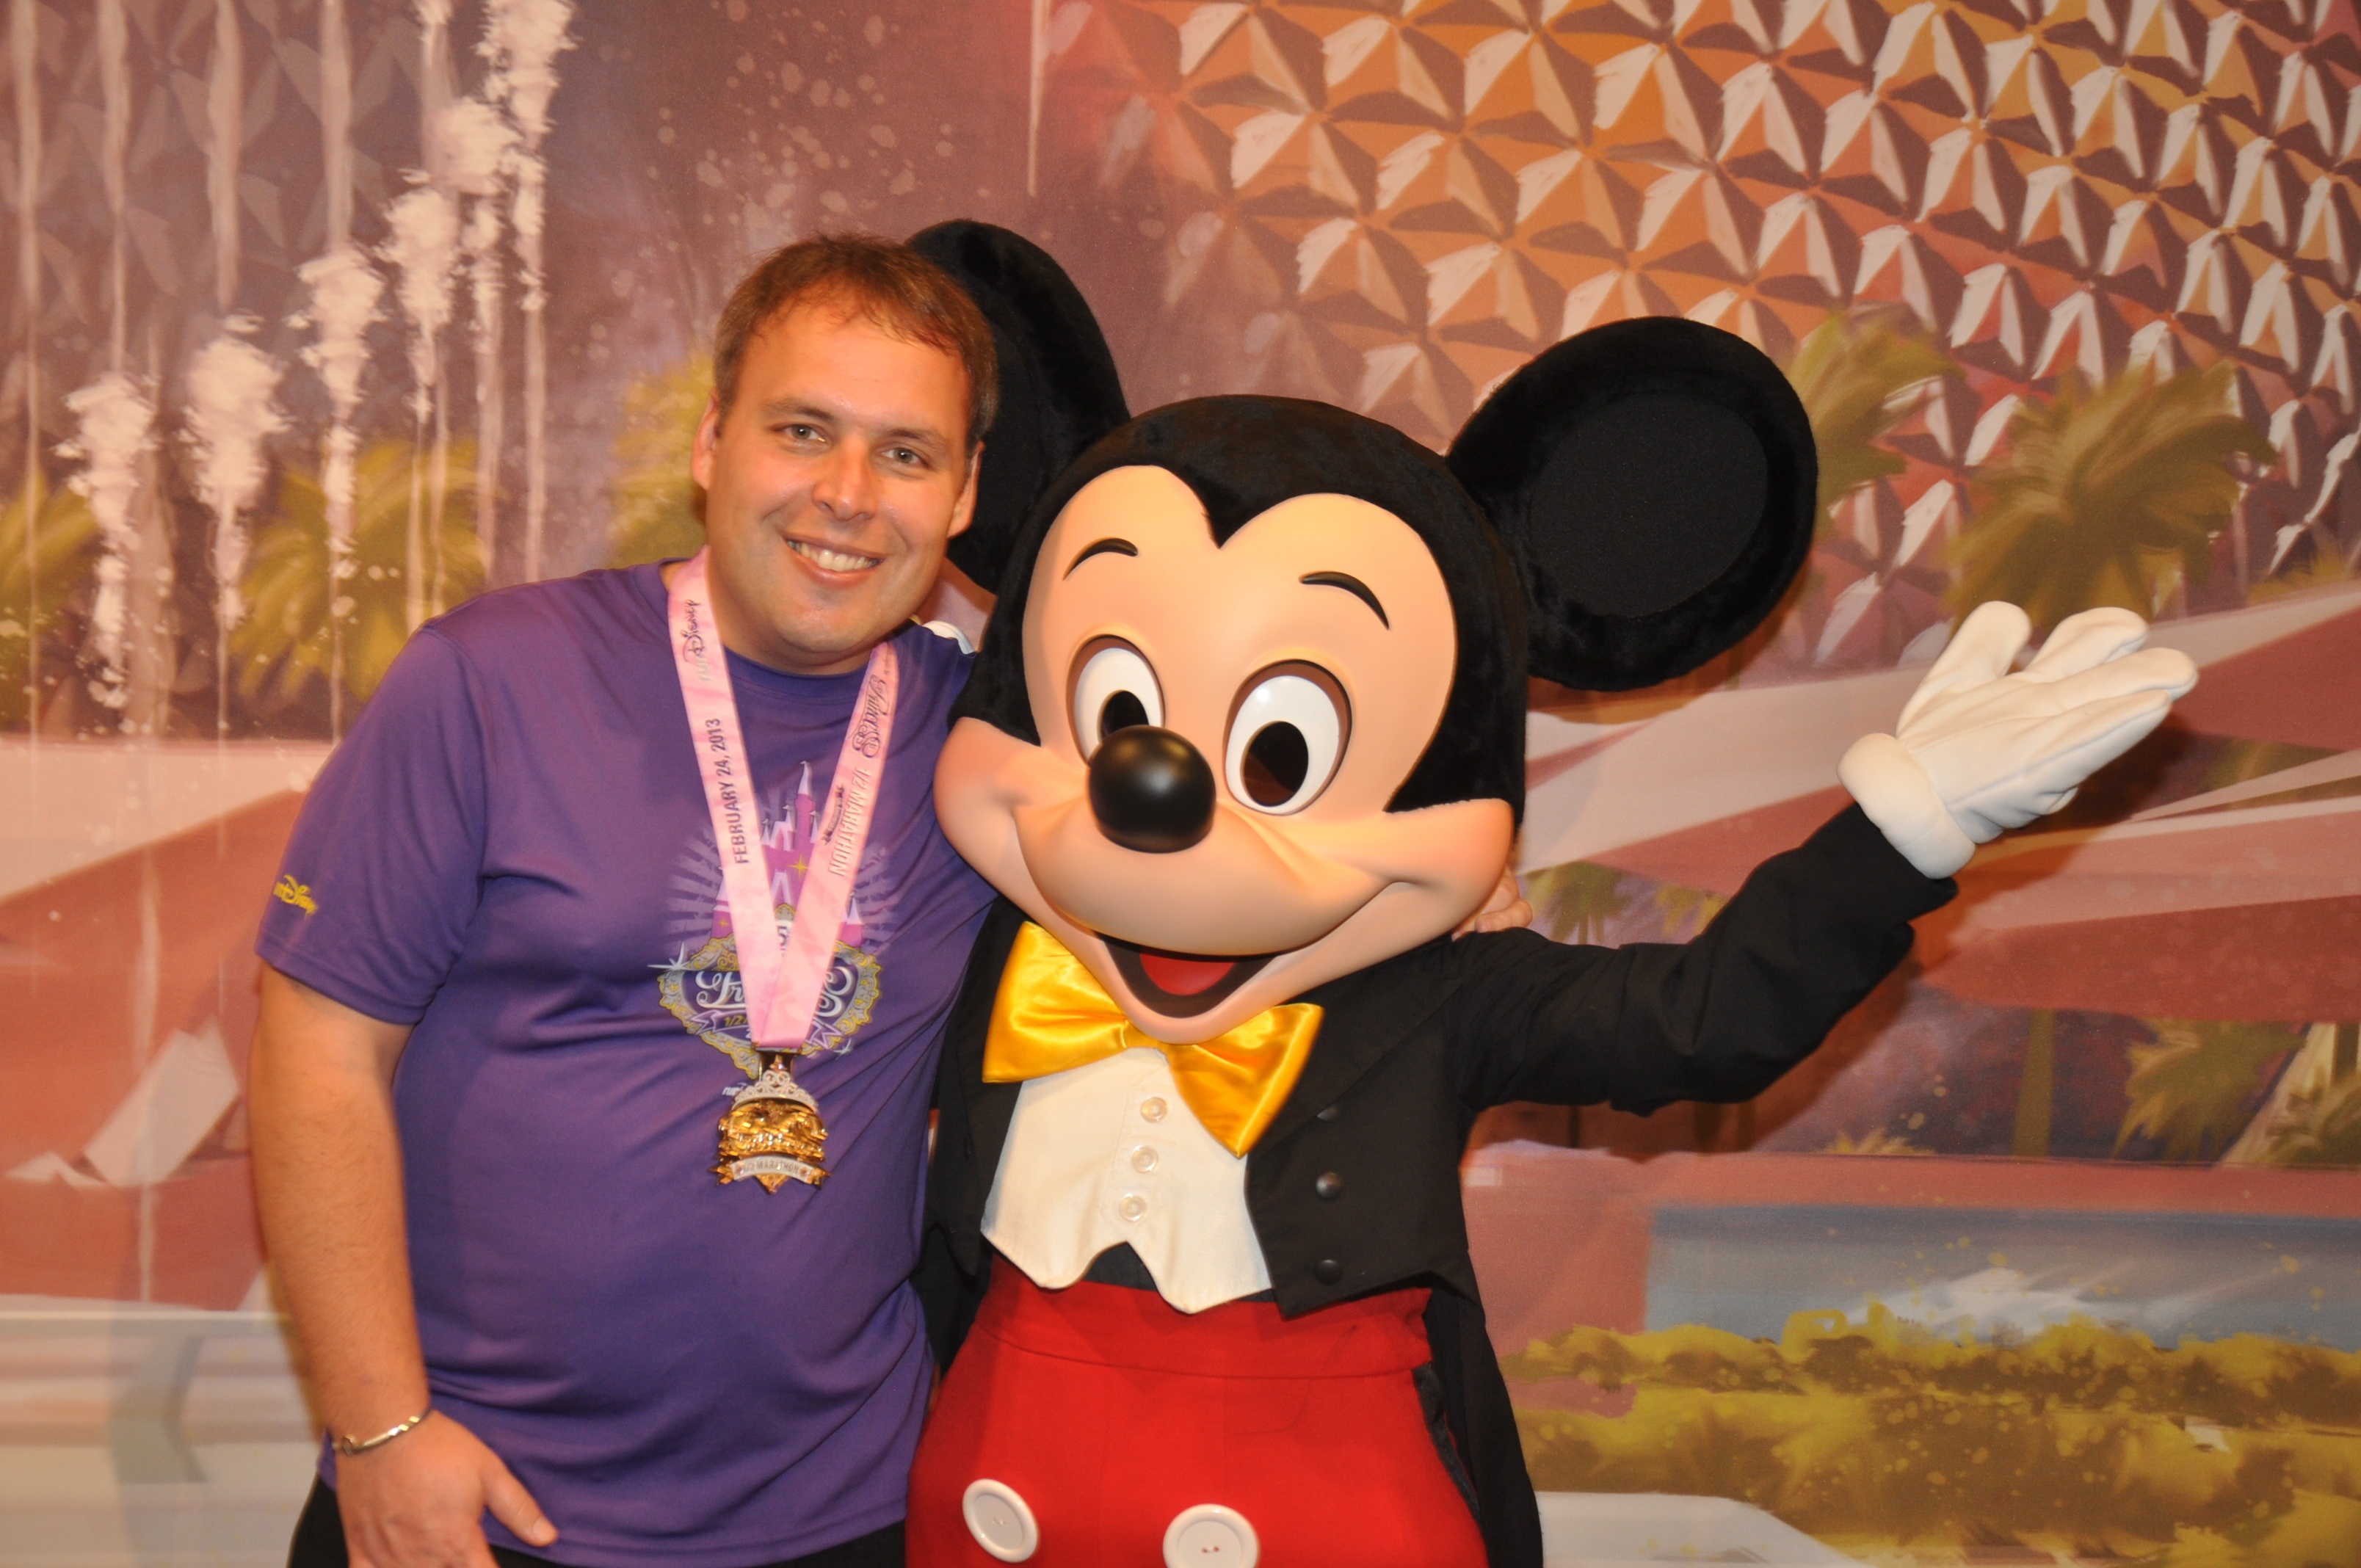 Should I Buy a WDW Annual Pass to RunDisney?